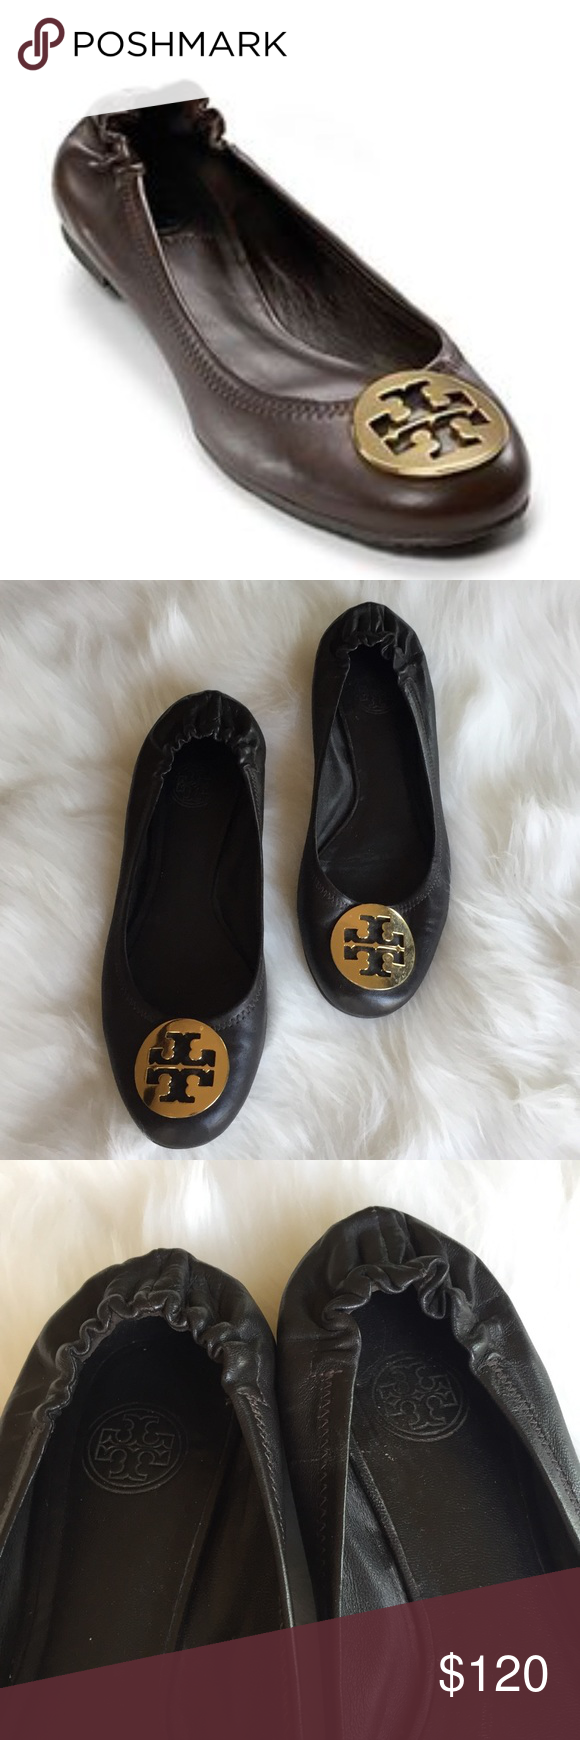 c81e9bbc1 Tory Burch Reva Ballet Flat with Elastic Back A rich combination of metal  and leather, the Tory Burch Reva is an instant wardrobe classic.